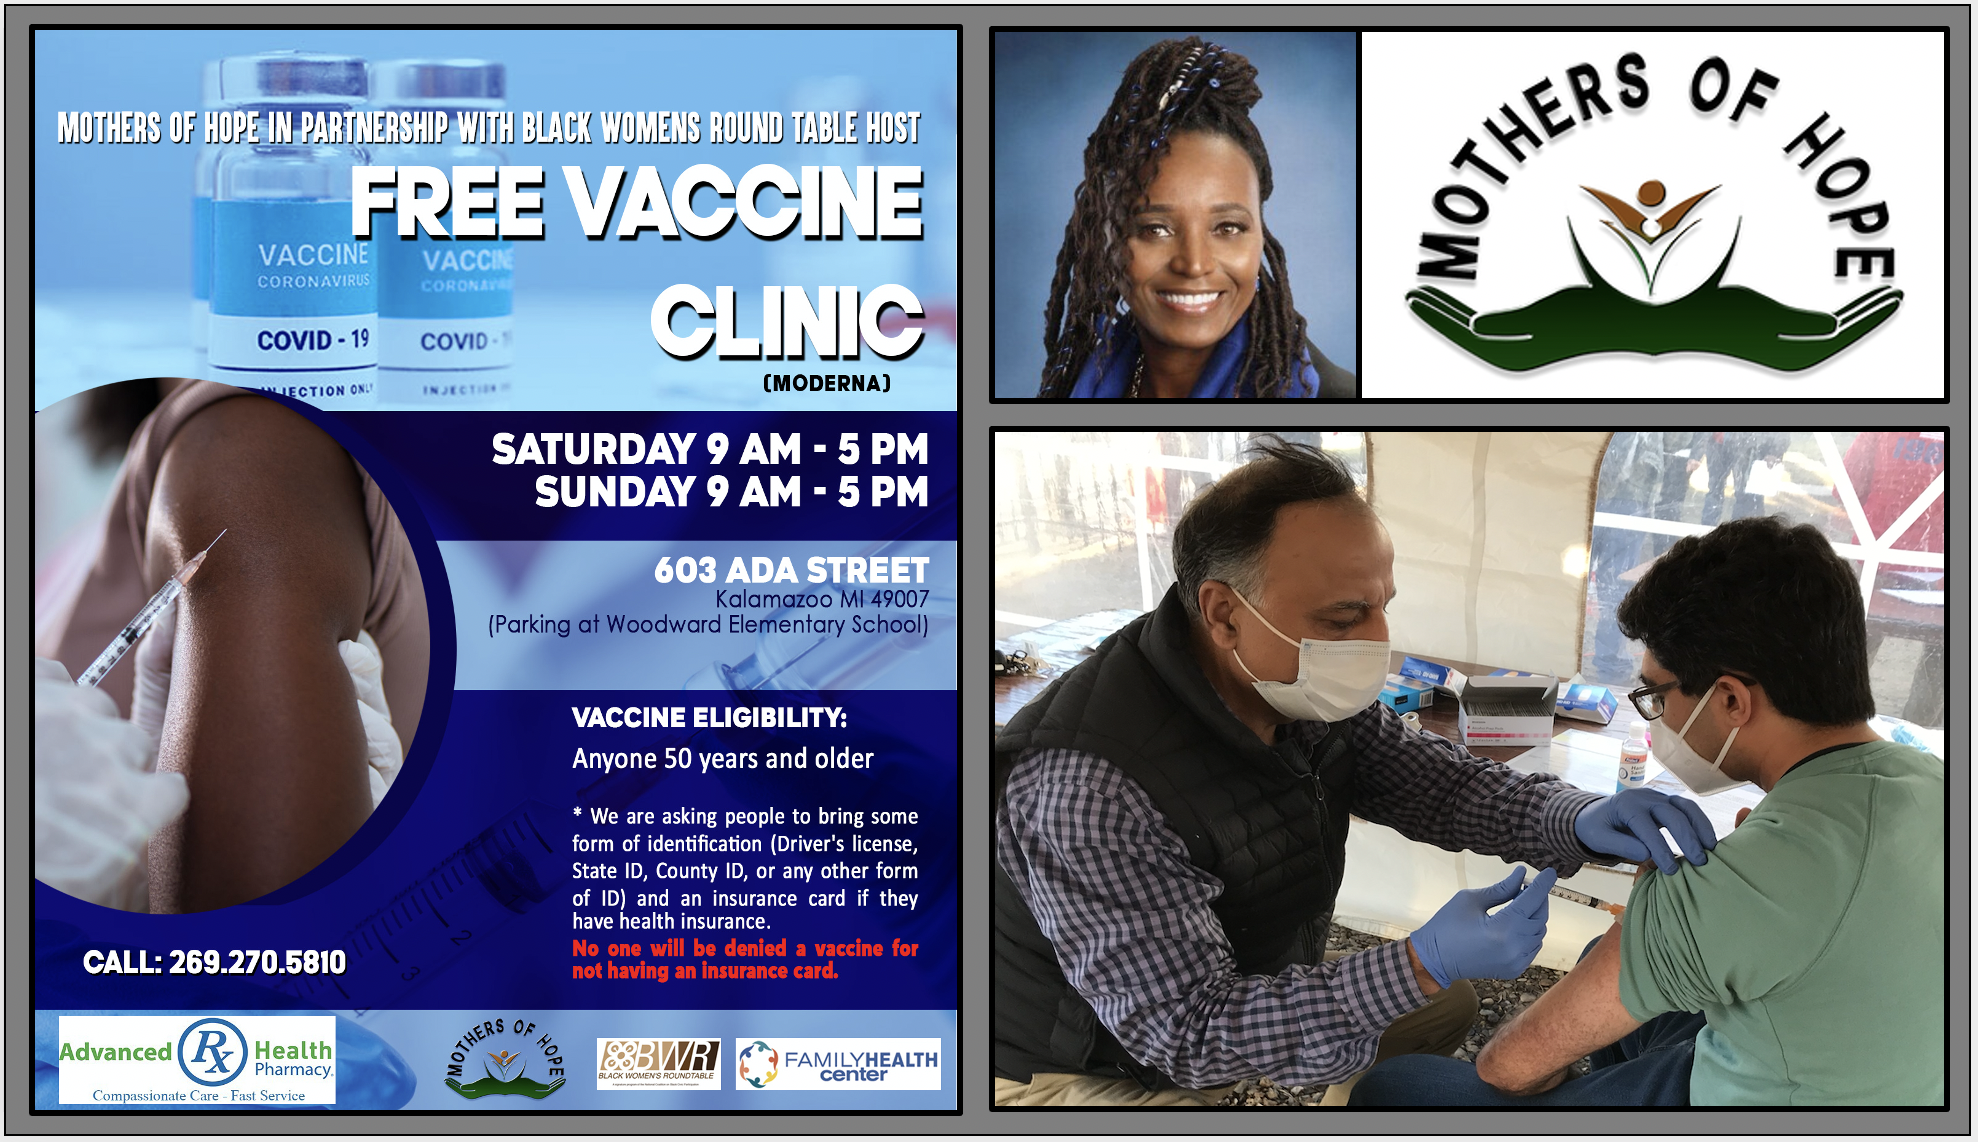 Mothers of Hope organized a free COVID vaccination clinic that vaccinated almost 2,000 people.